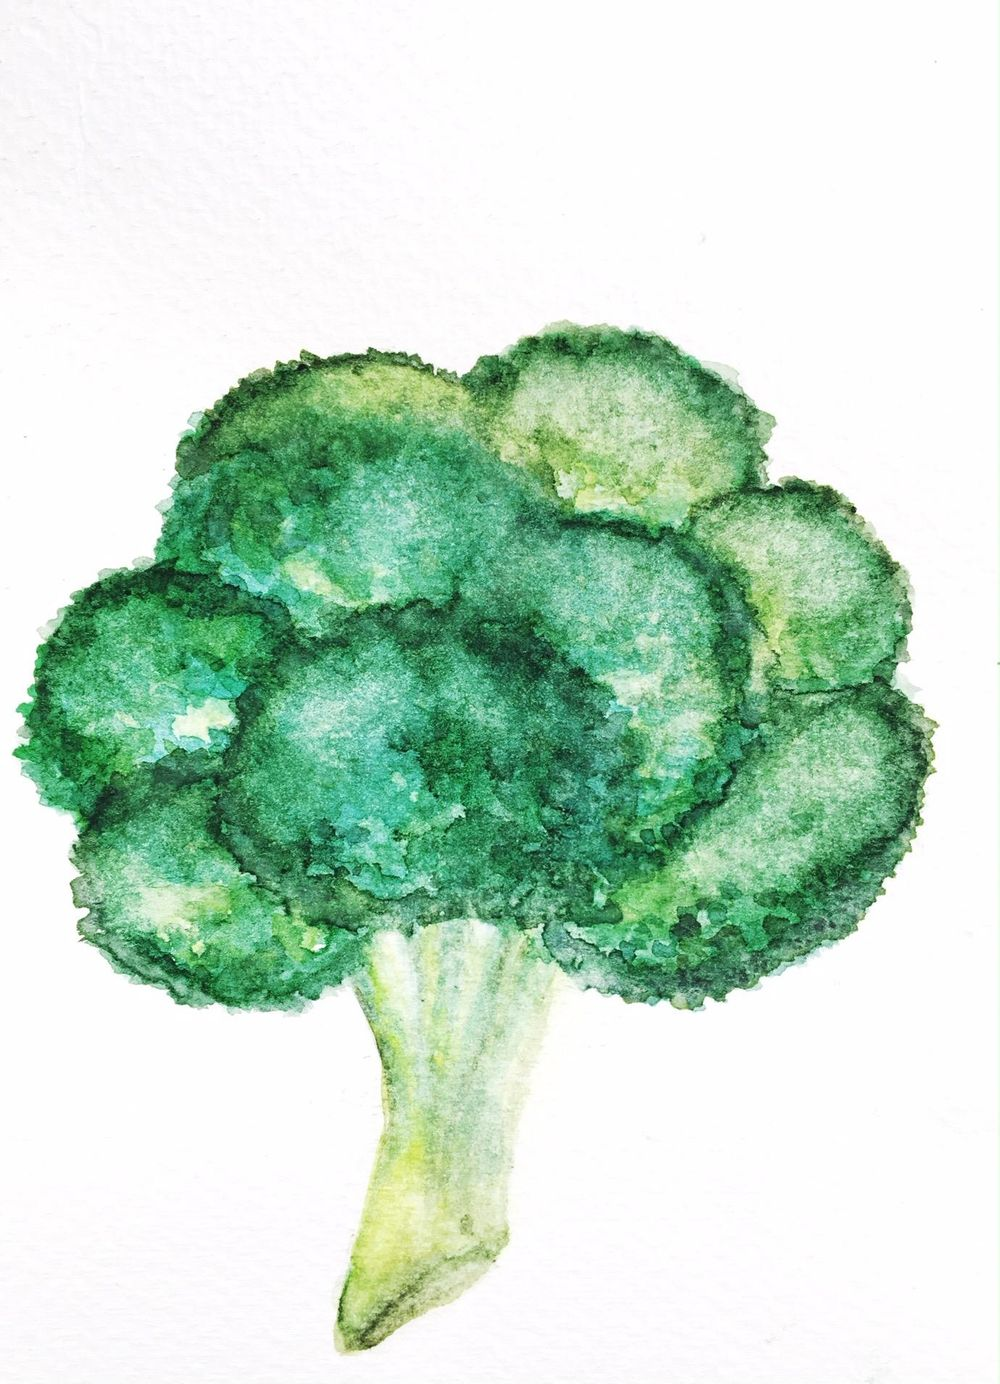 Painting veggies - image 3 - student project